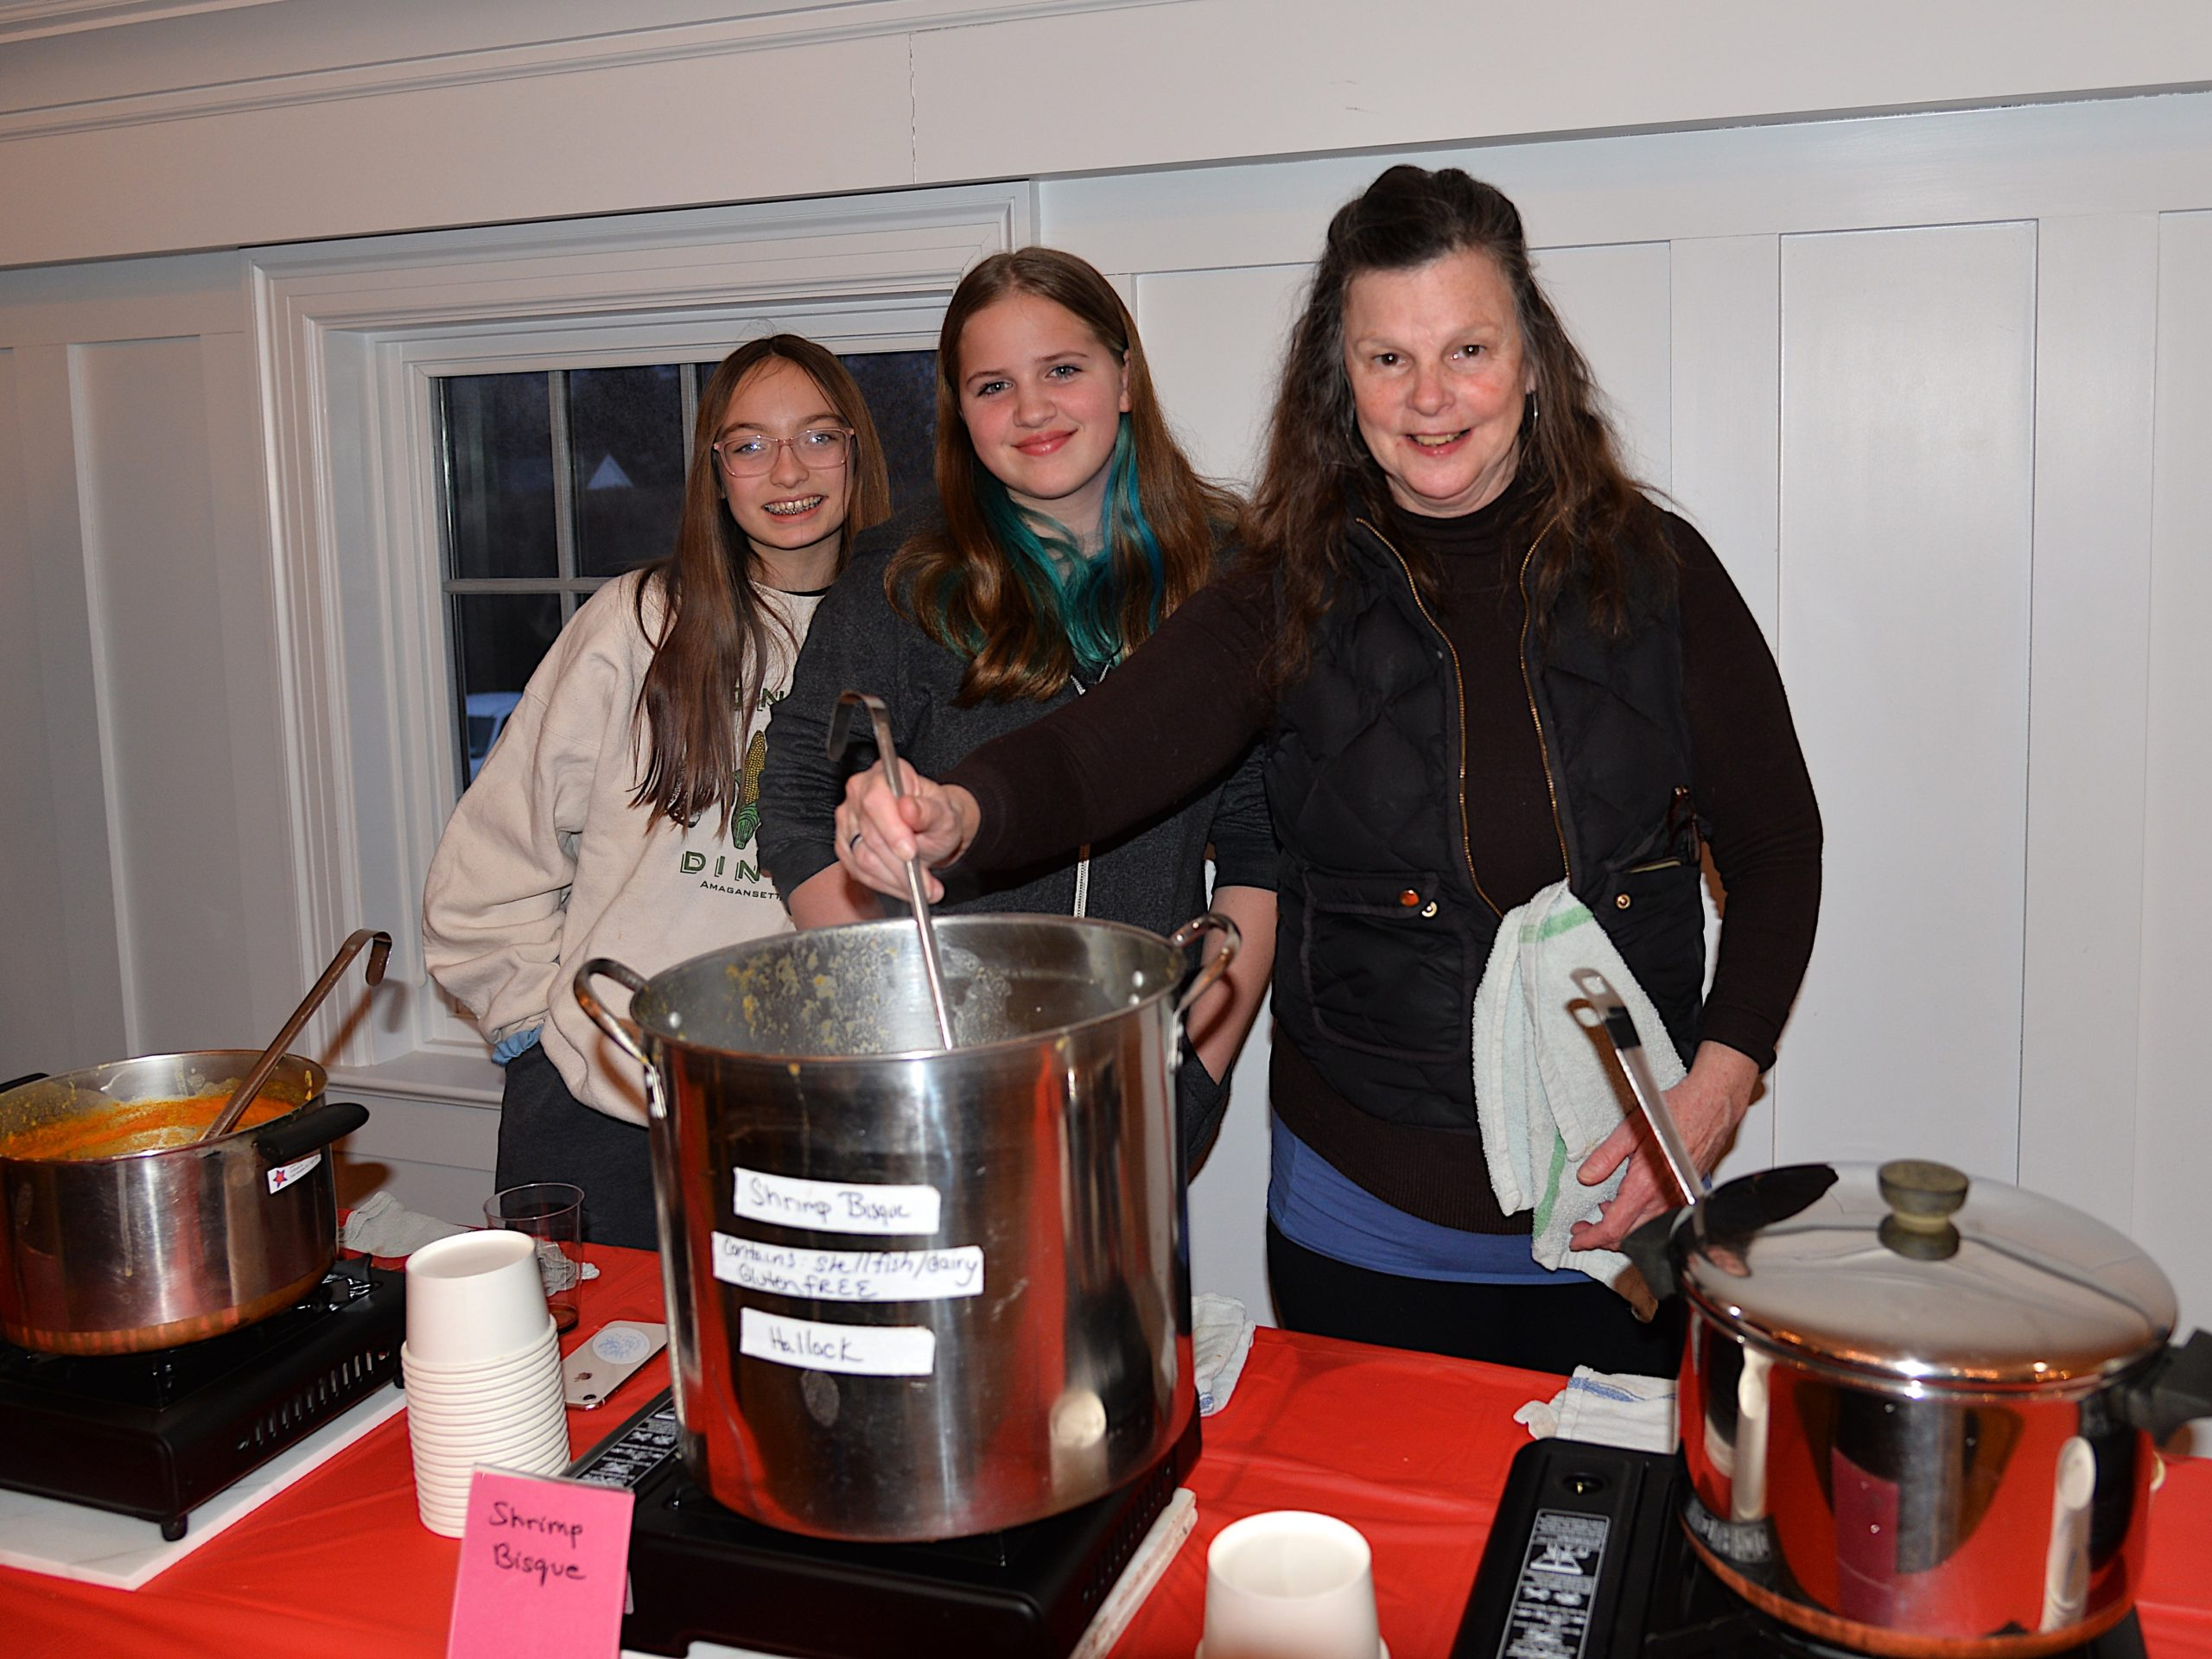 The deacons of the Amagansett Presbyterian Church hosted a Soup and Chili dinner on Saturday. Ea Feleppa, Emma Hallock and Betsy Martin are ready to serve it up. KYRIL BROMLEY